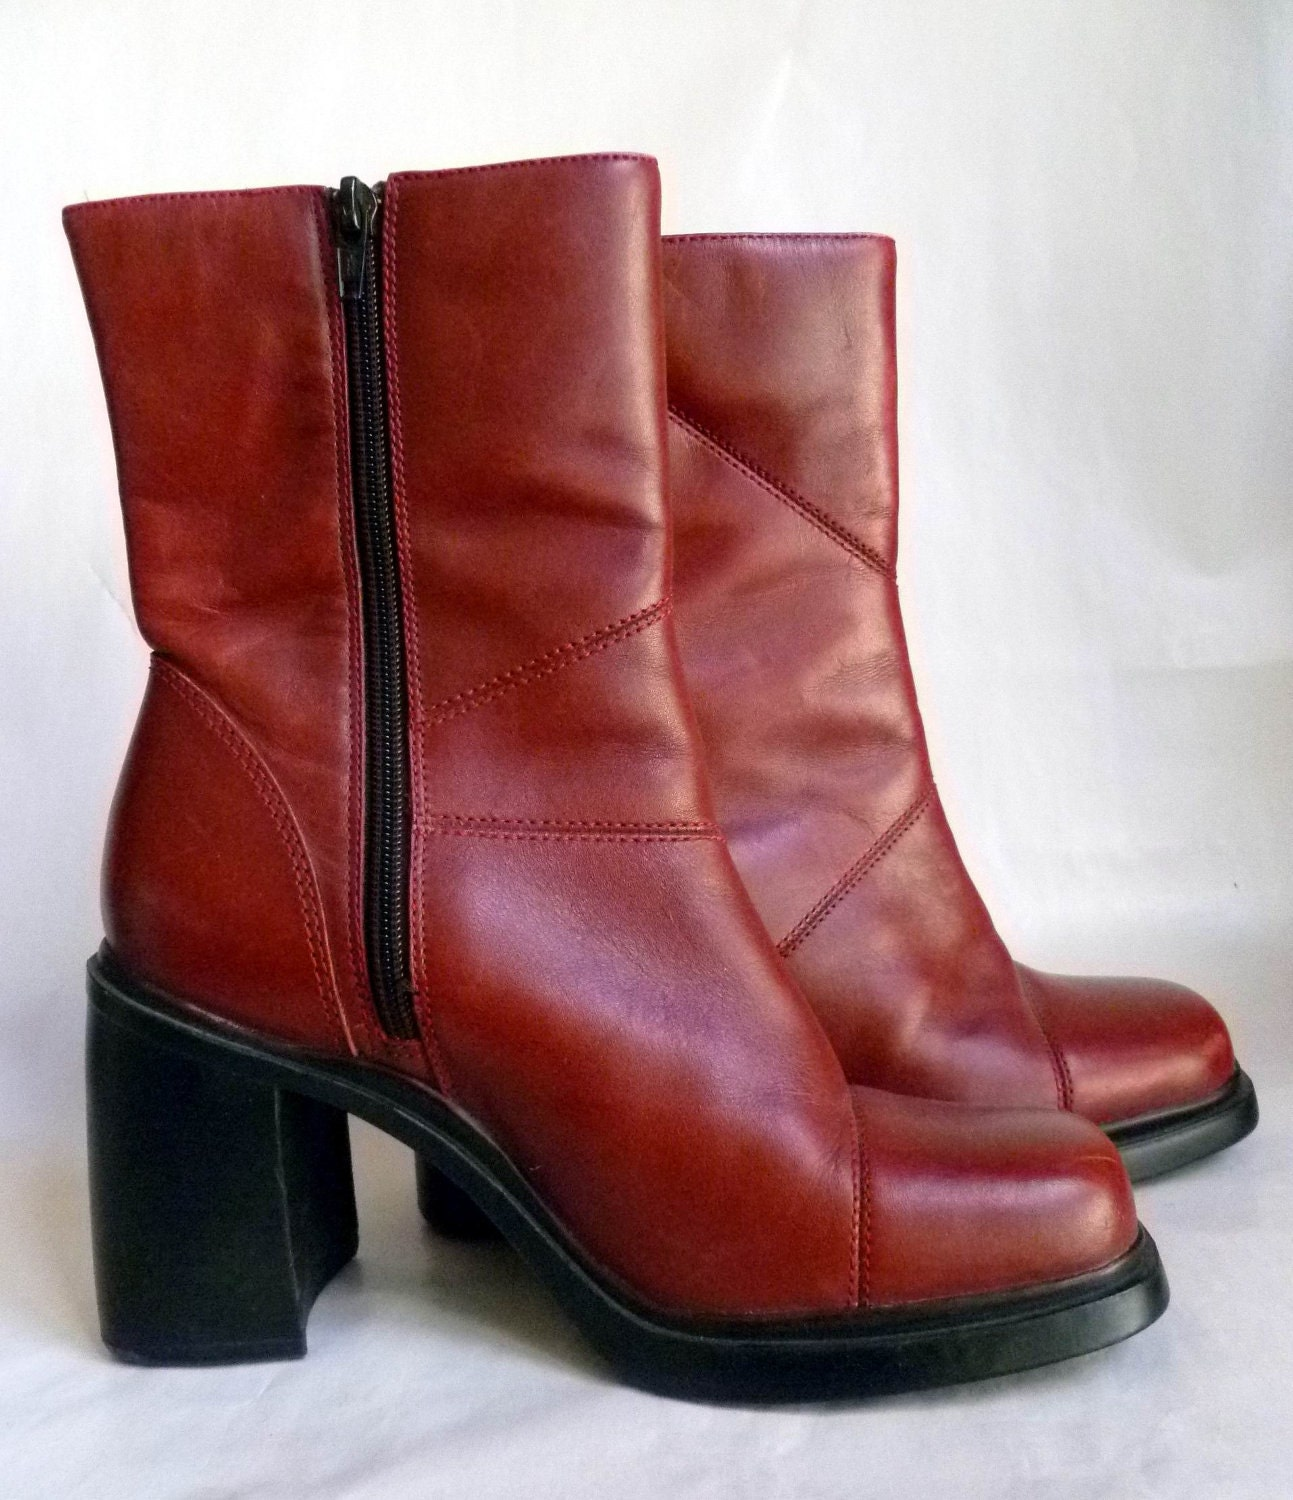 leather ankle boots side zipper burgundy wine 3 5